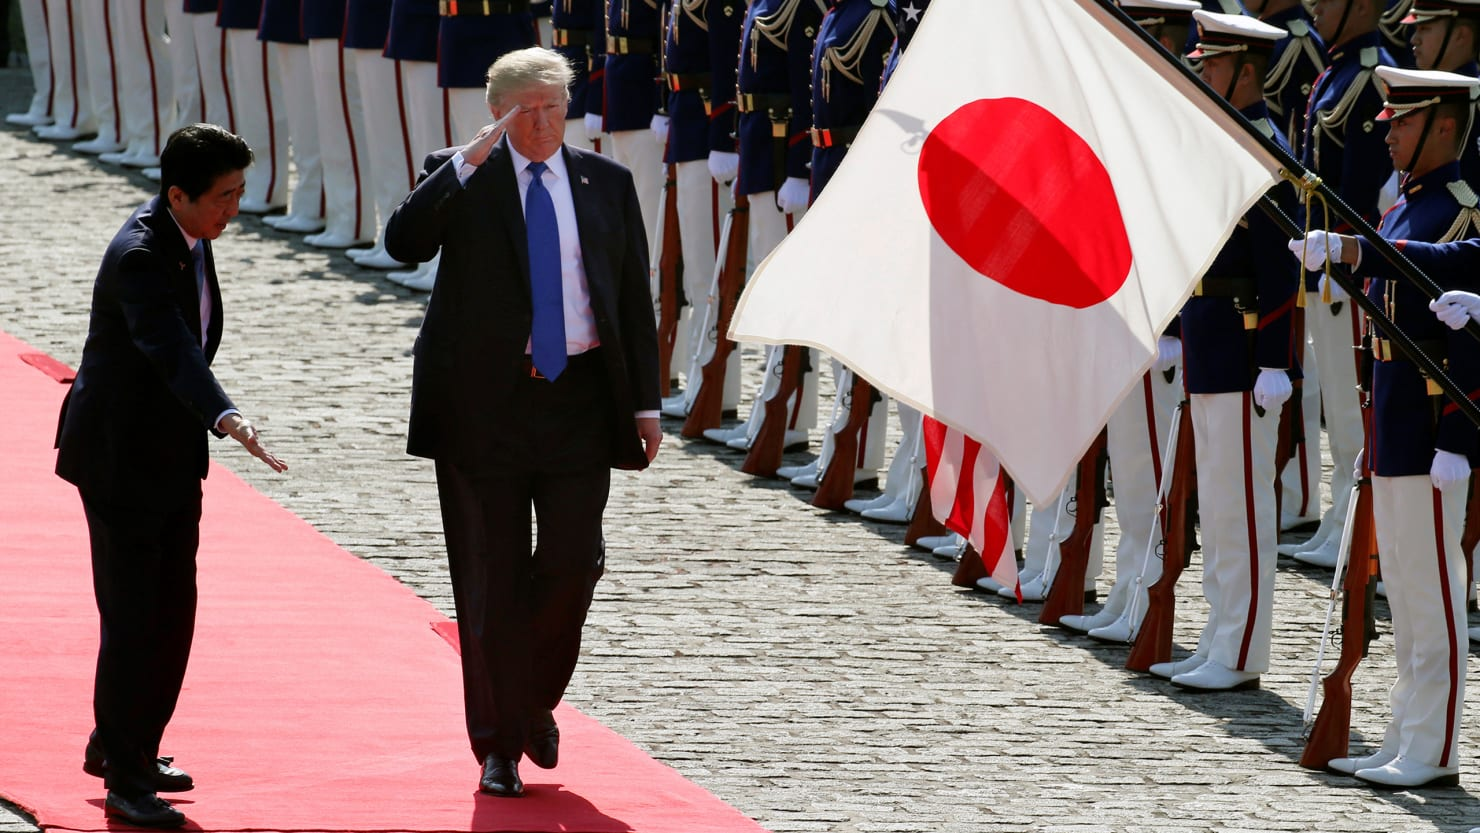 U.S. President Donald Trump reviews an honor guard during a welcome ceremony with Japanese Prime Minister Shinzo Abe at Akasaka State Guest House in Tokyo, Monday, Nov.6, 2017.